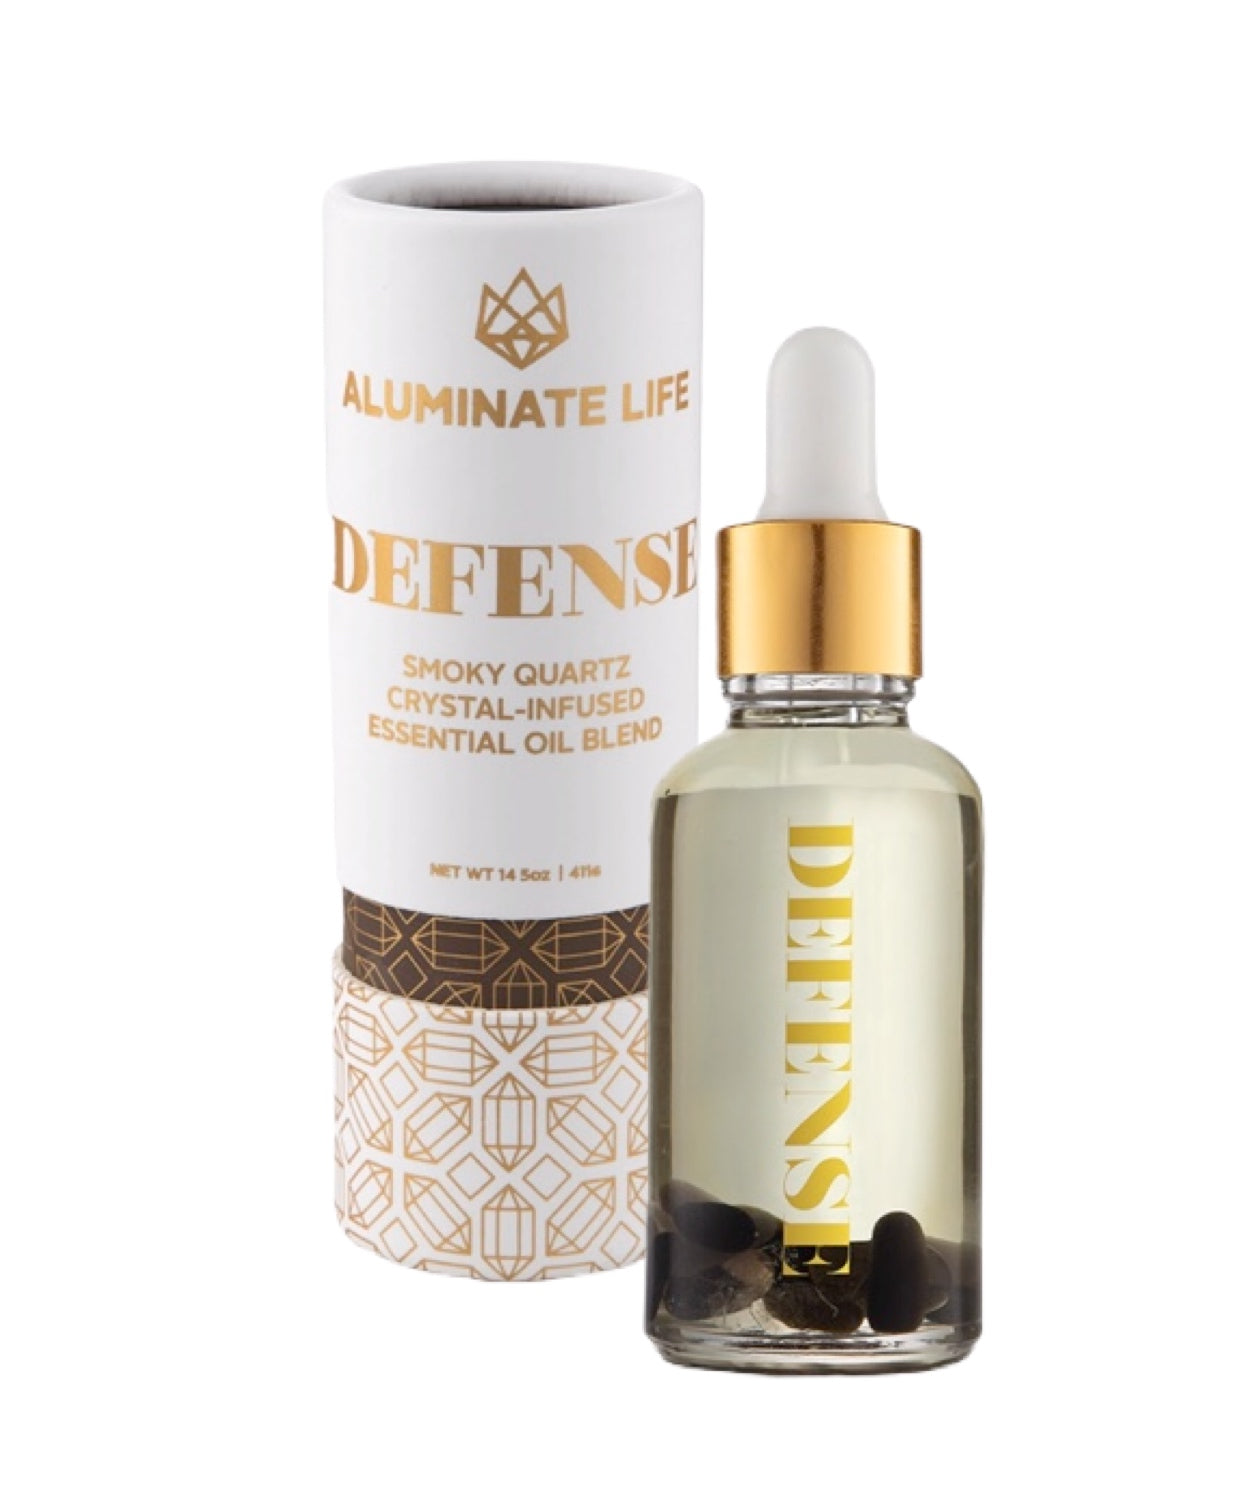 Defense Essential Oil Vial - Aluminate Life